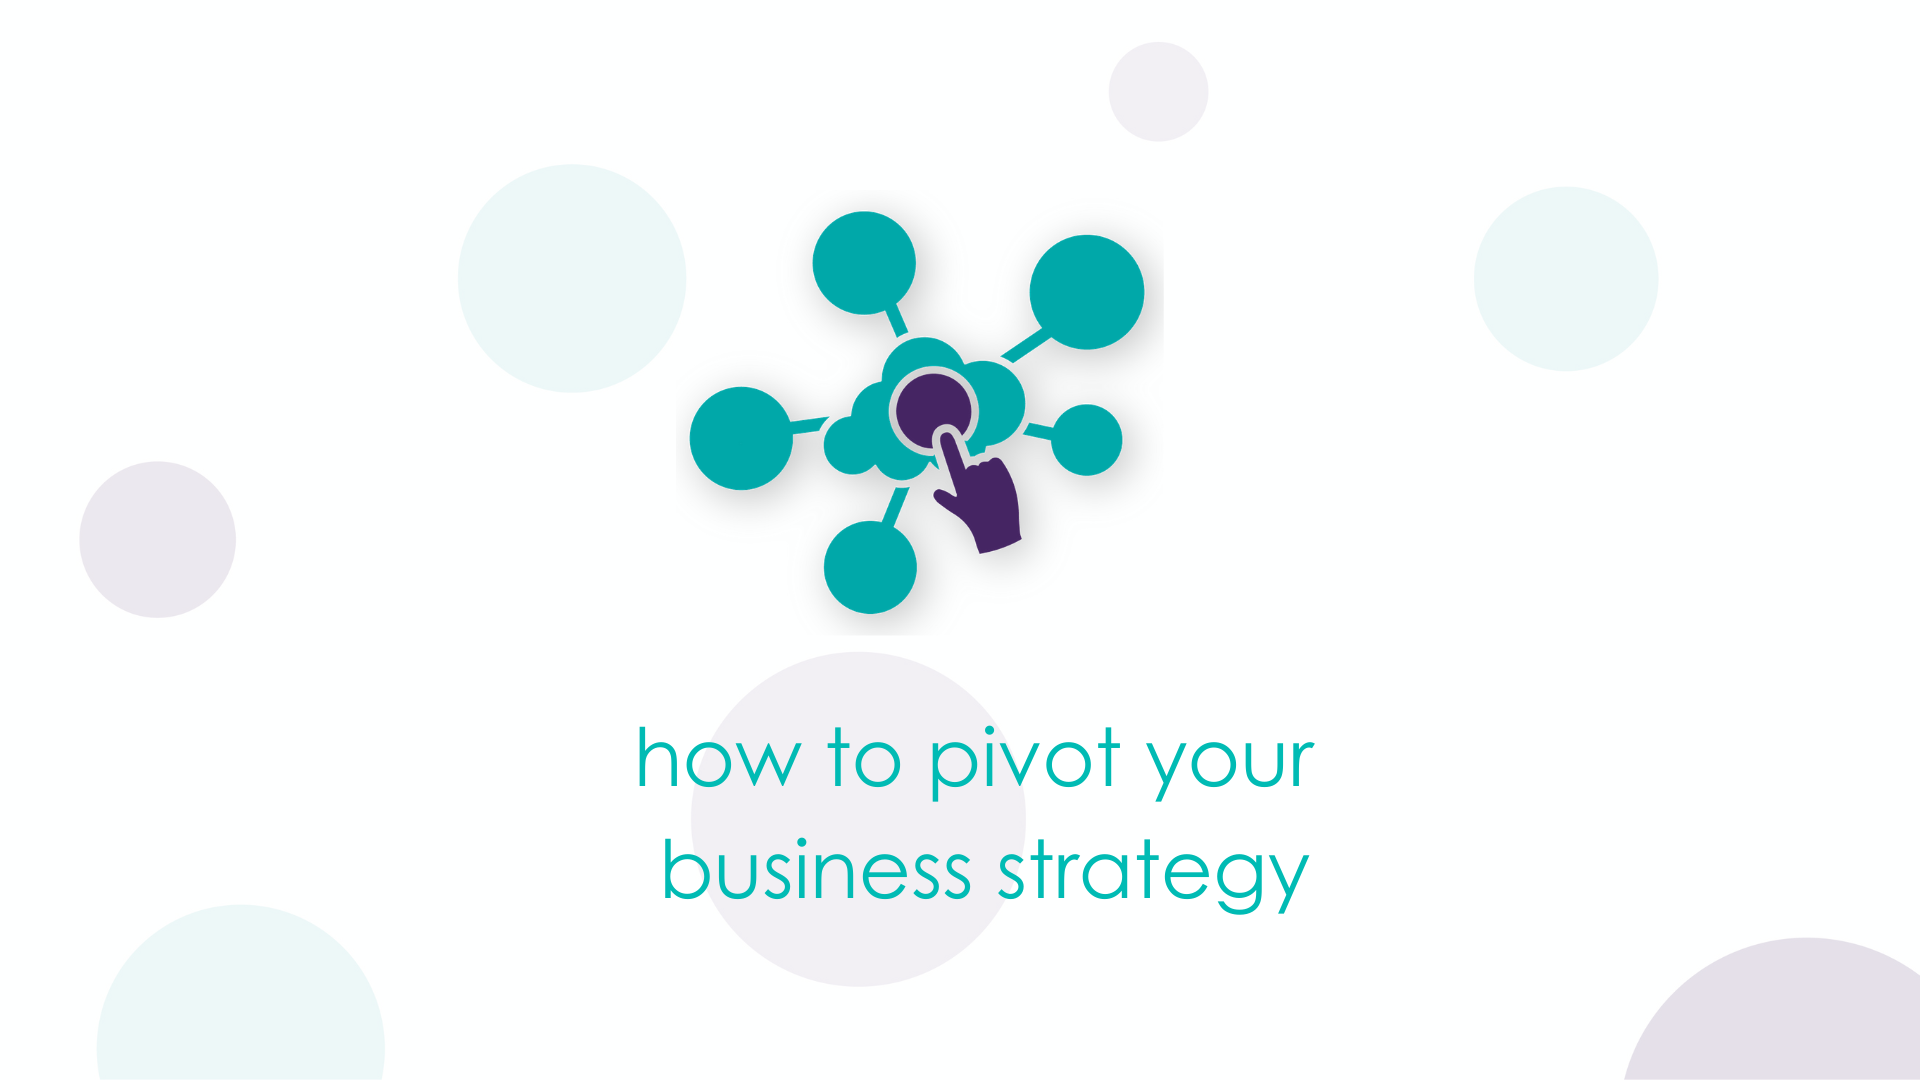 how to pivot your business strategy